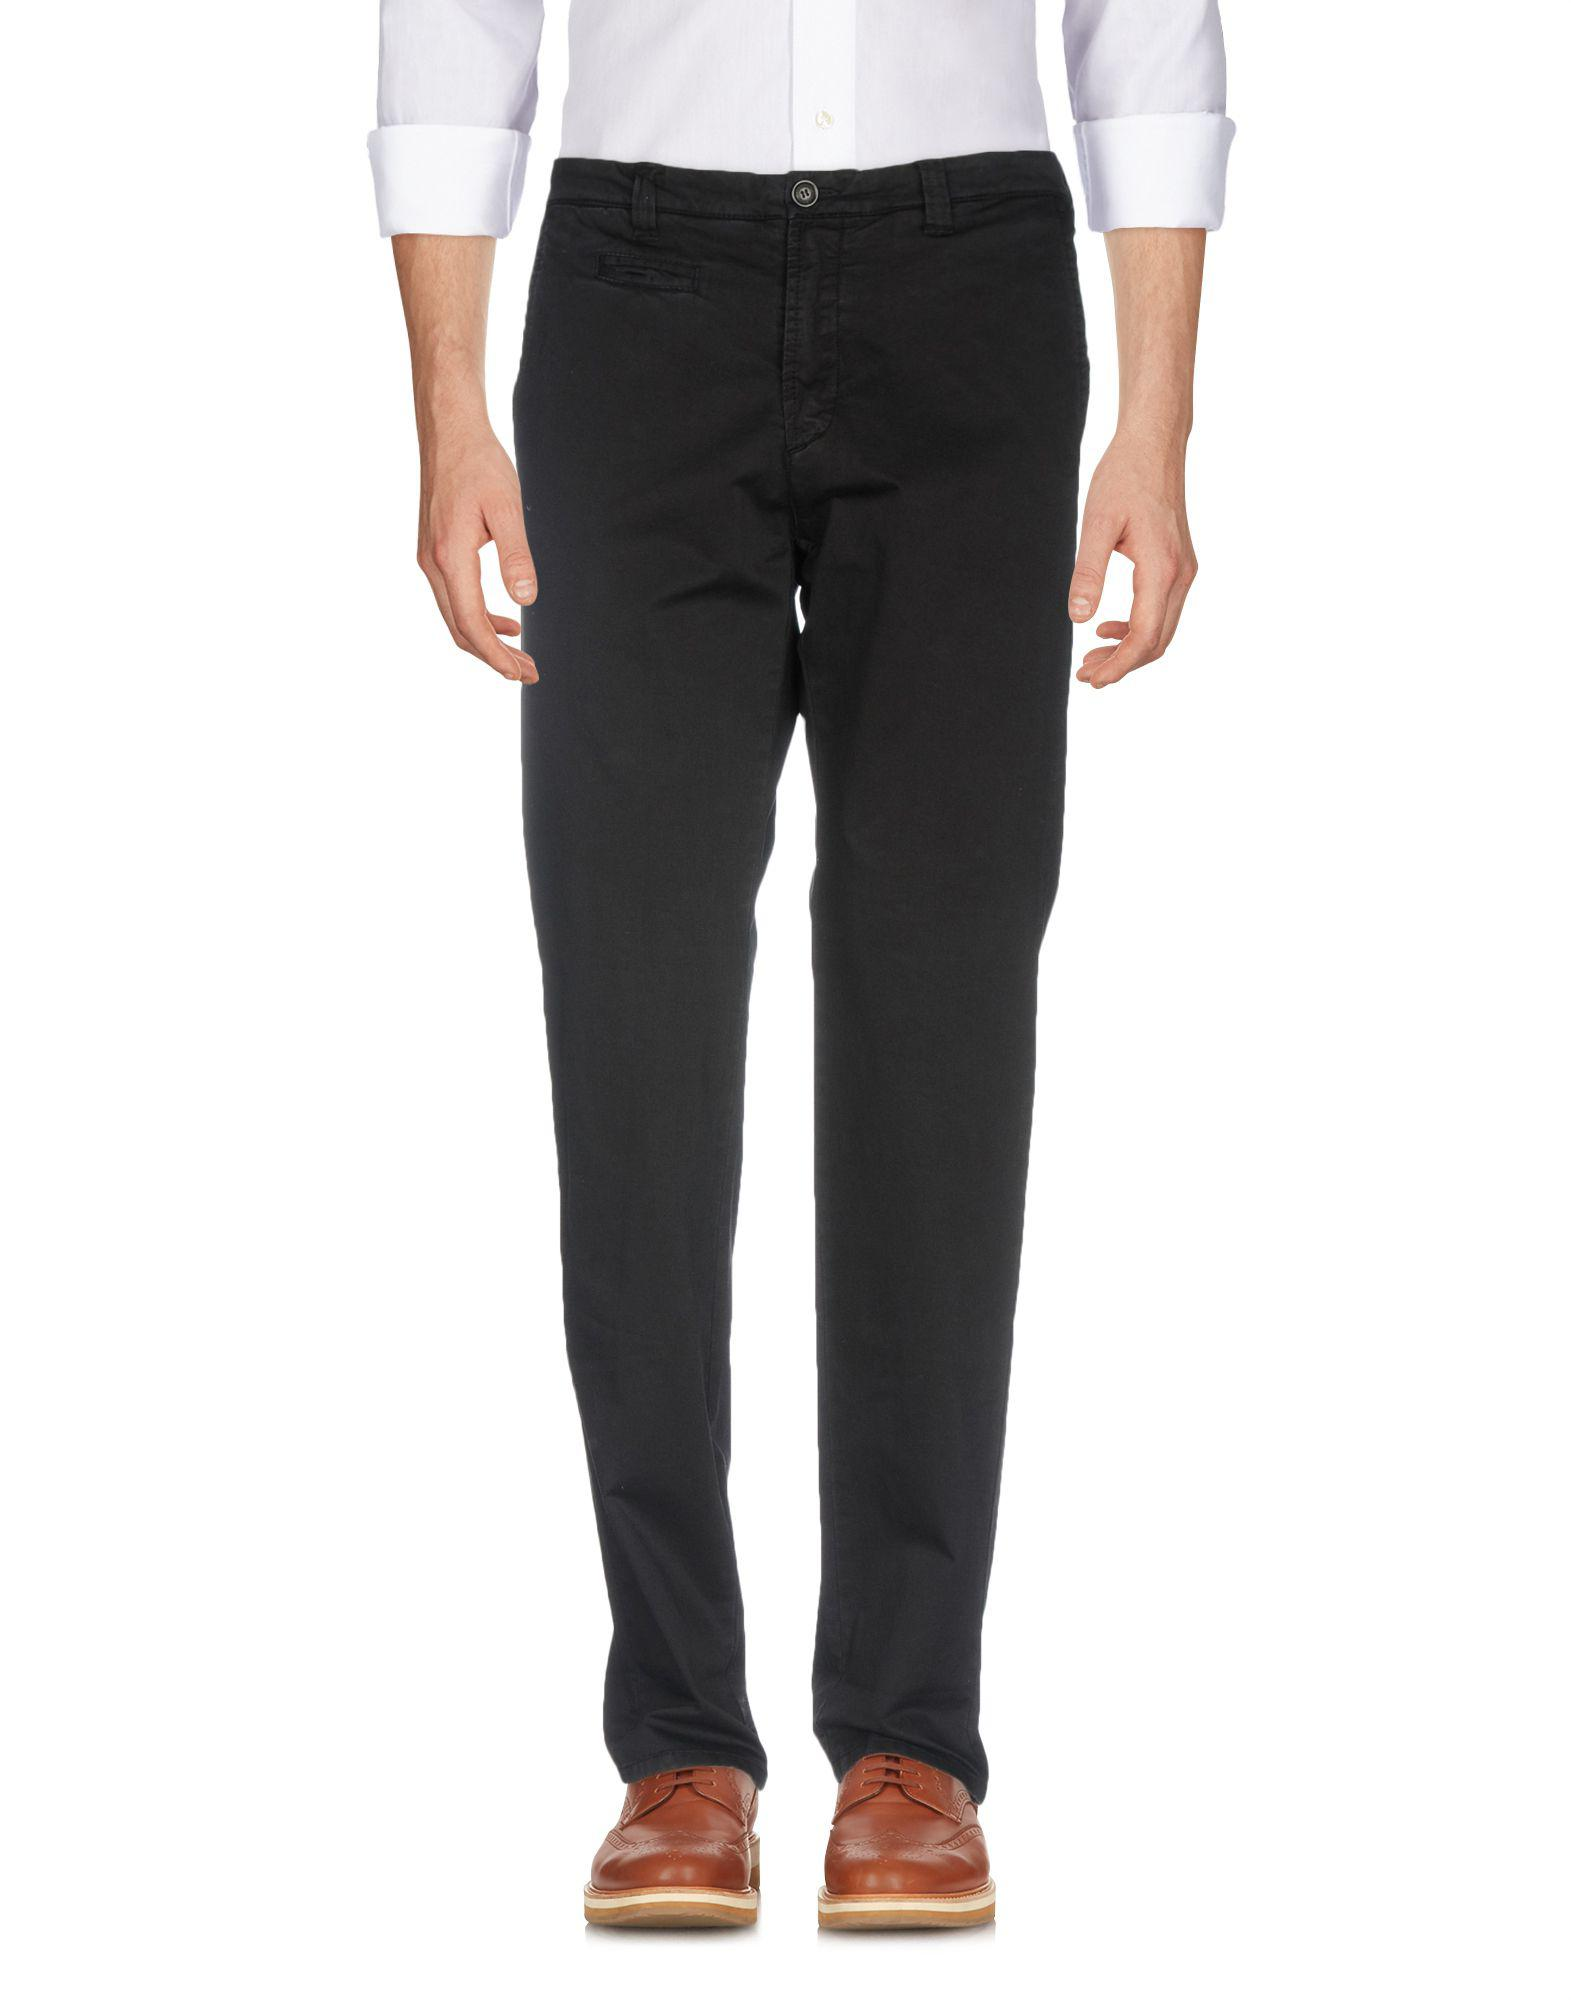 TROUSERS - Casual trousers Gazzarrini WMgnsJ9CL